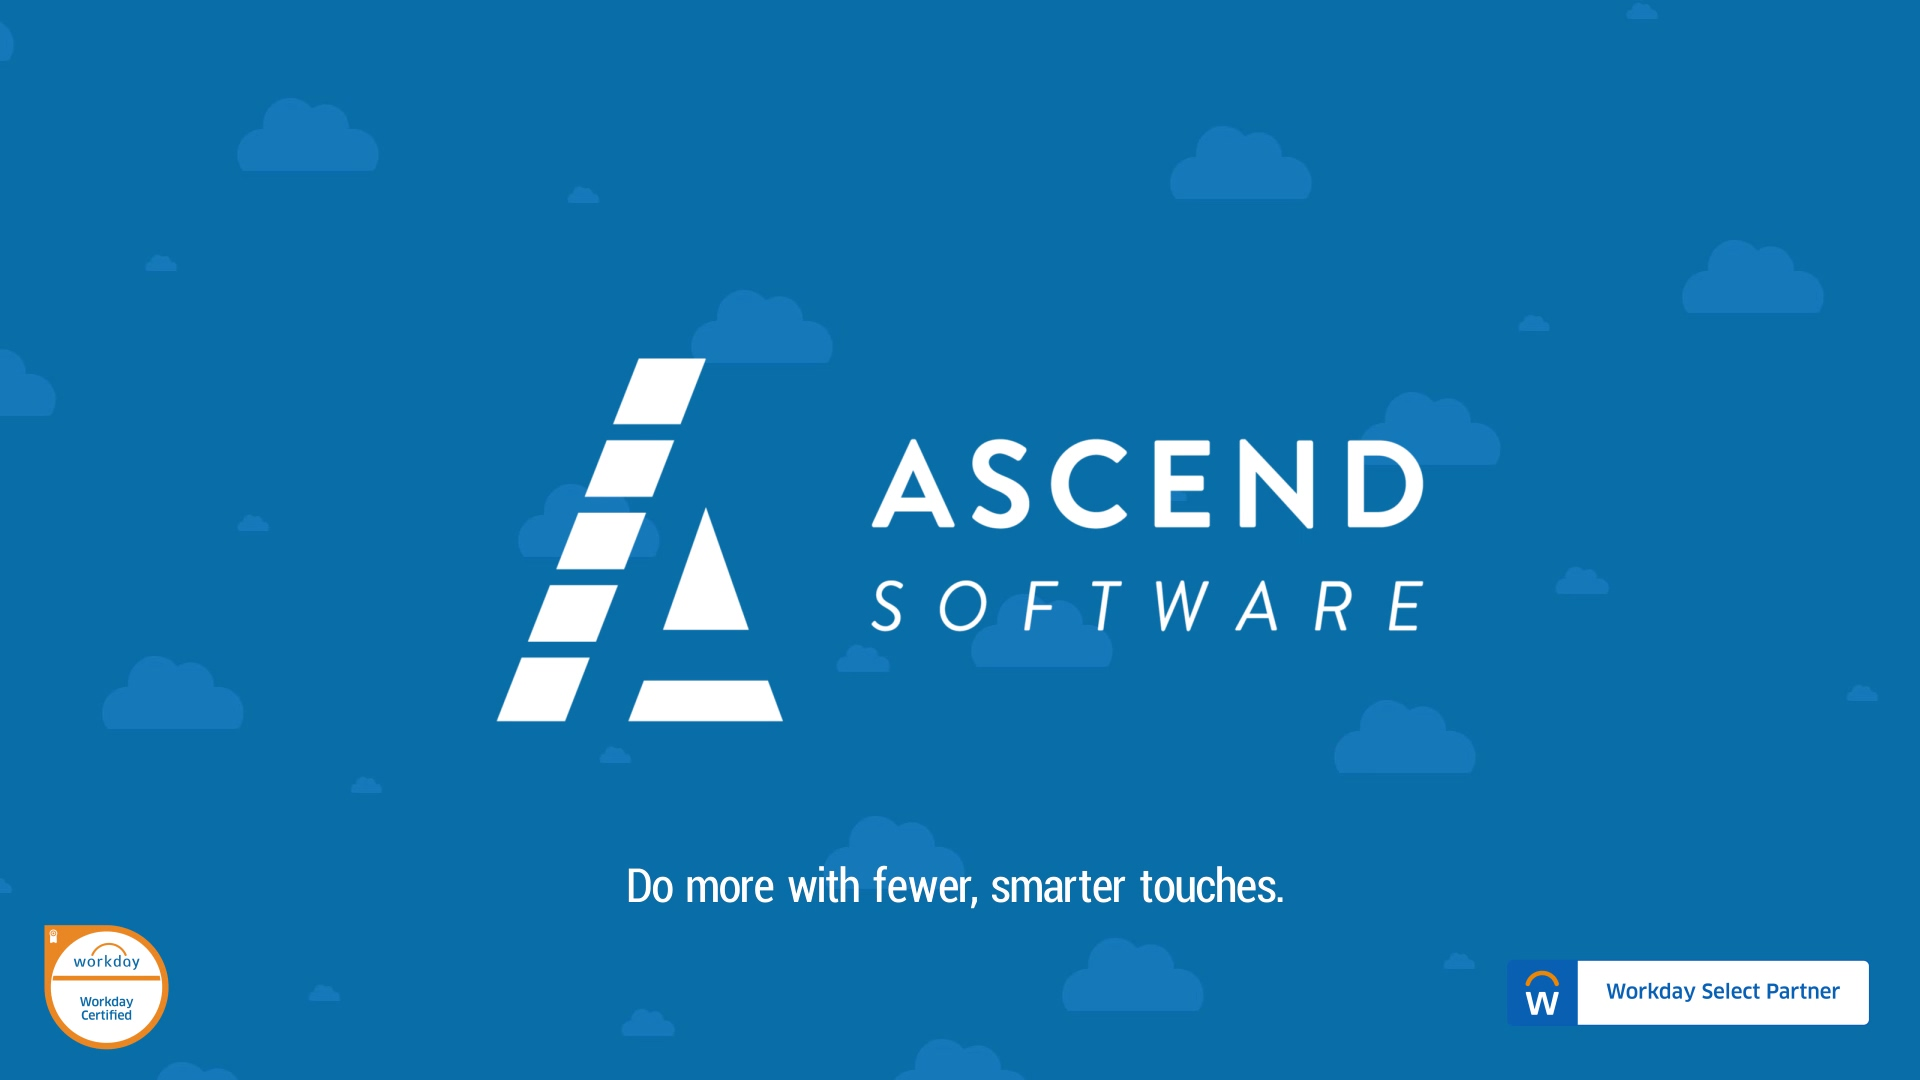 Ascends Workday Marketing Video - Version 5